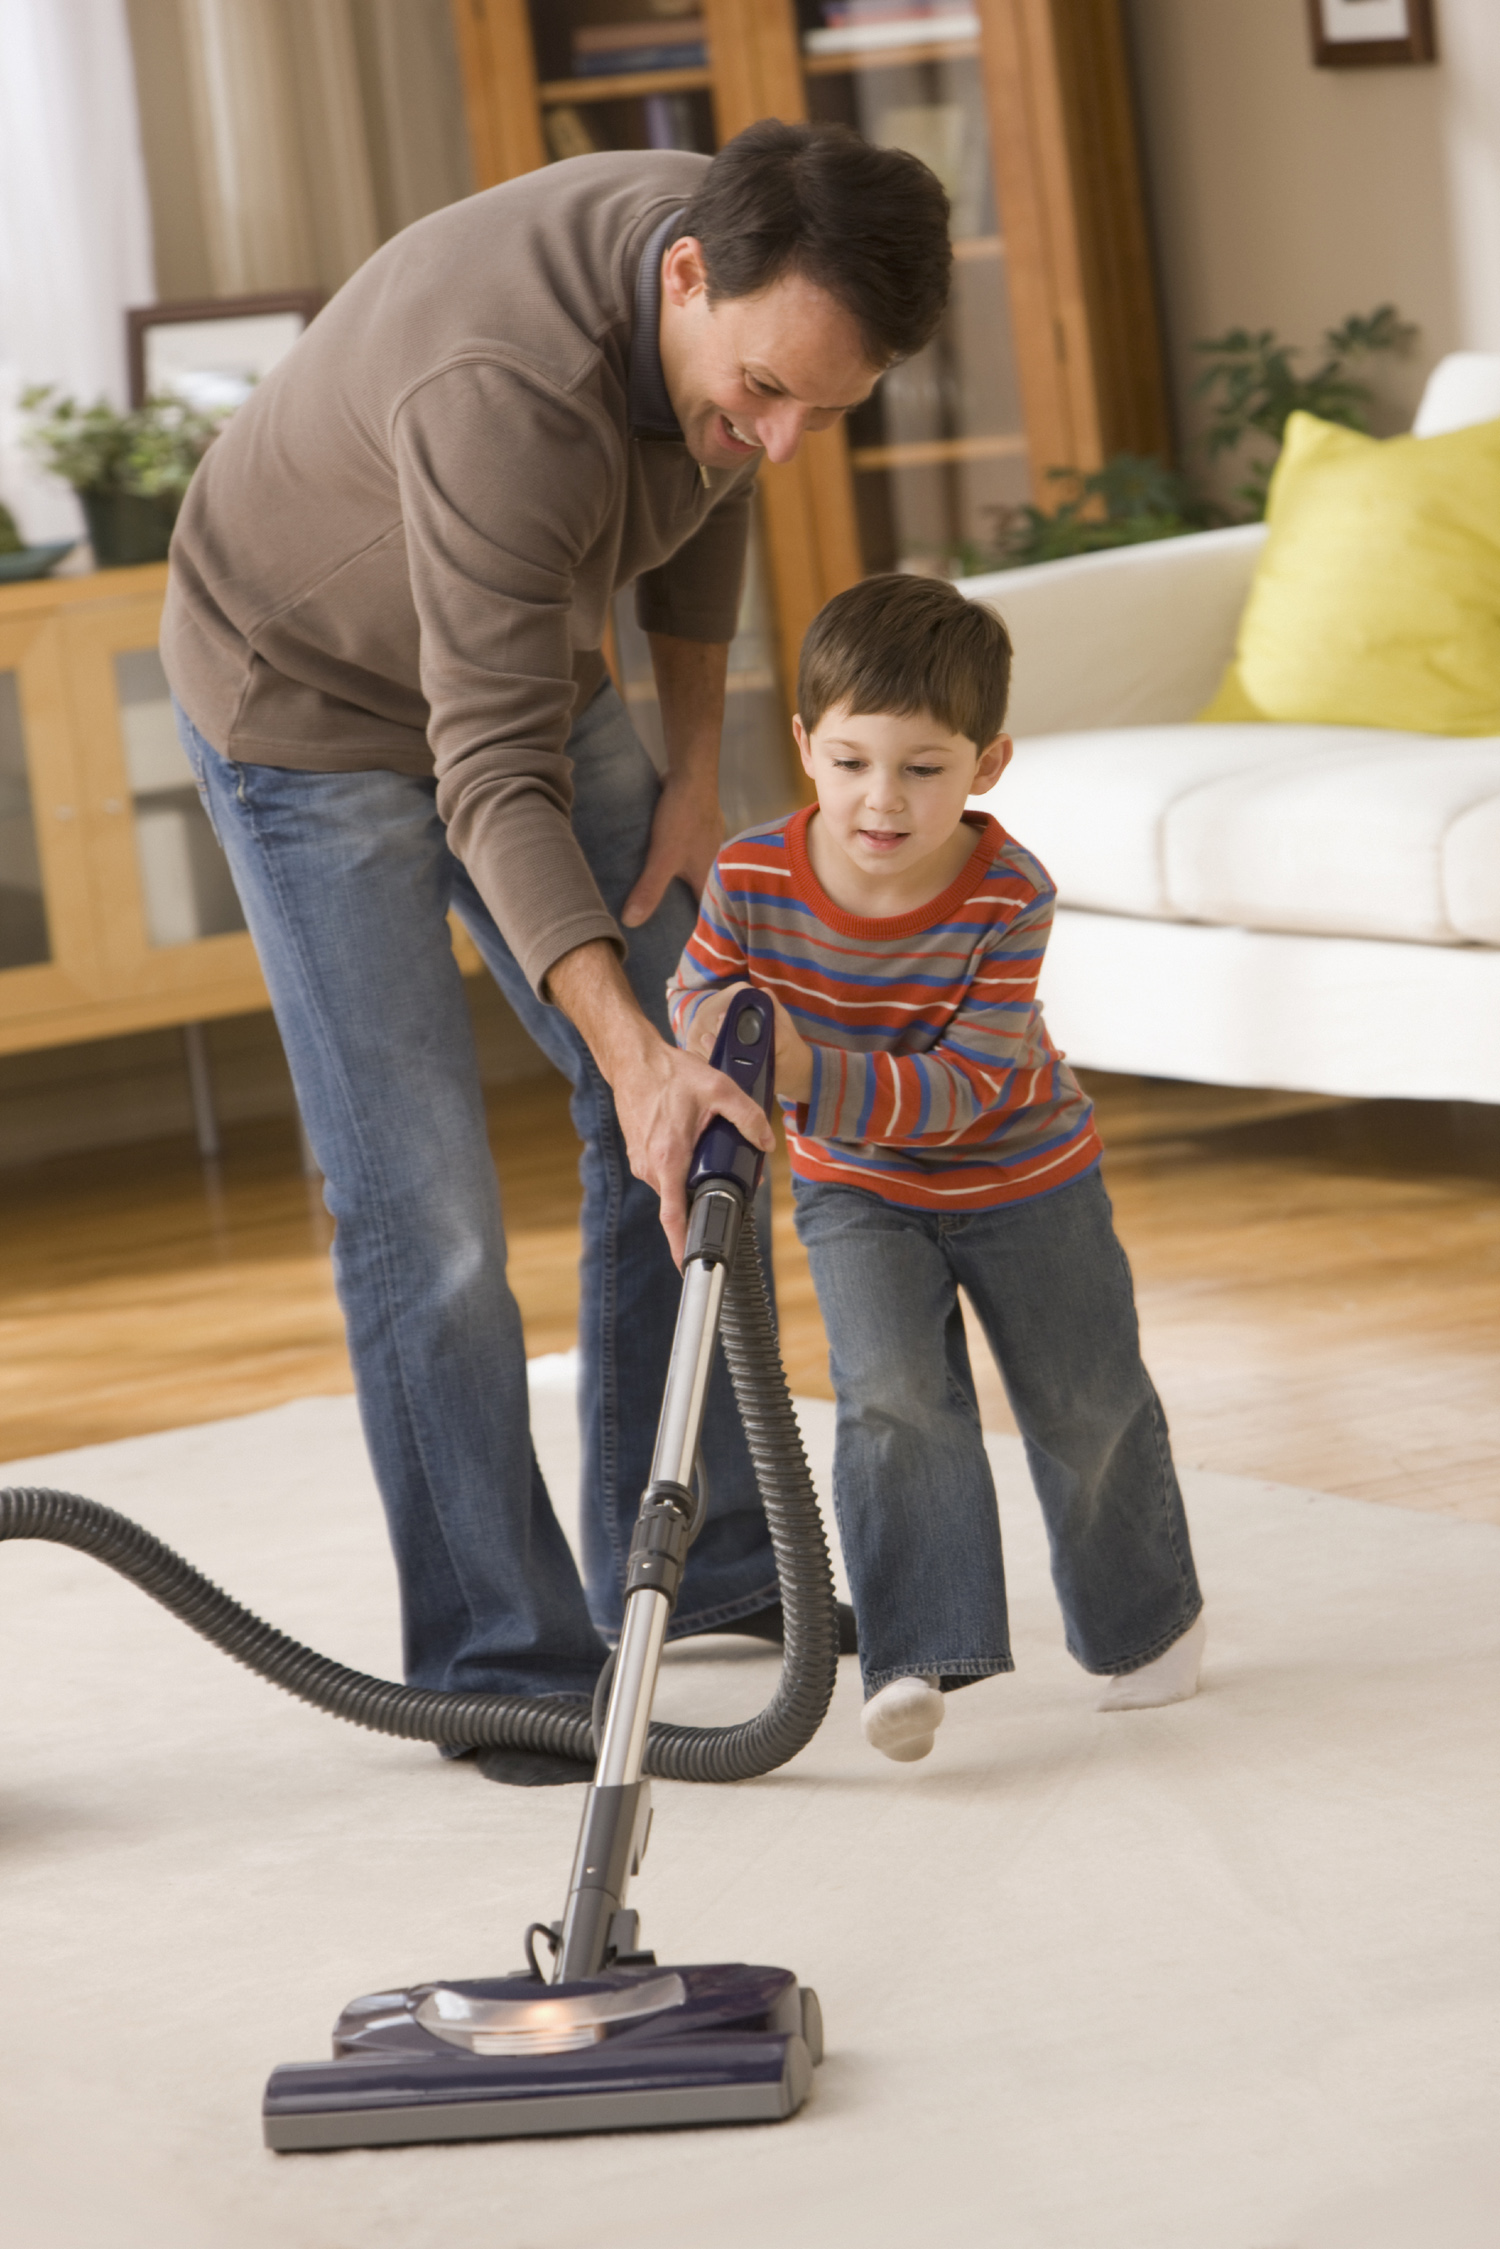 Father and Son Vacuuming